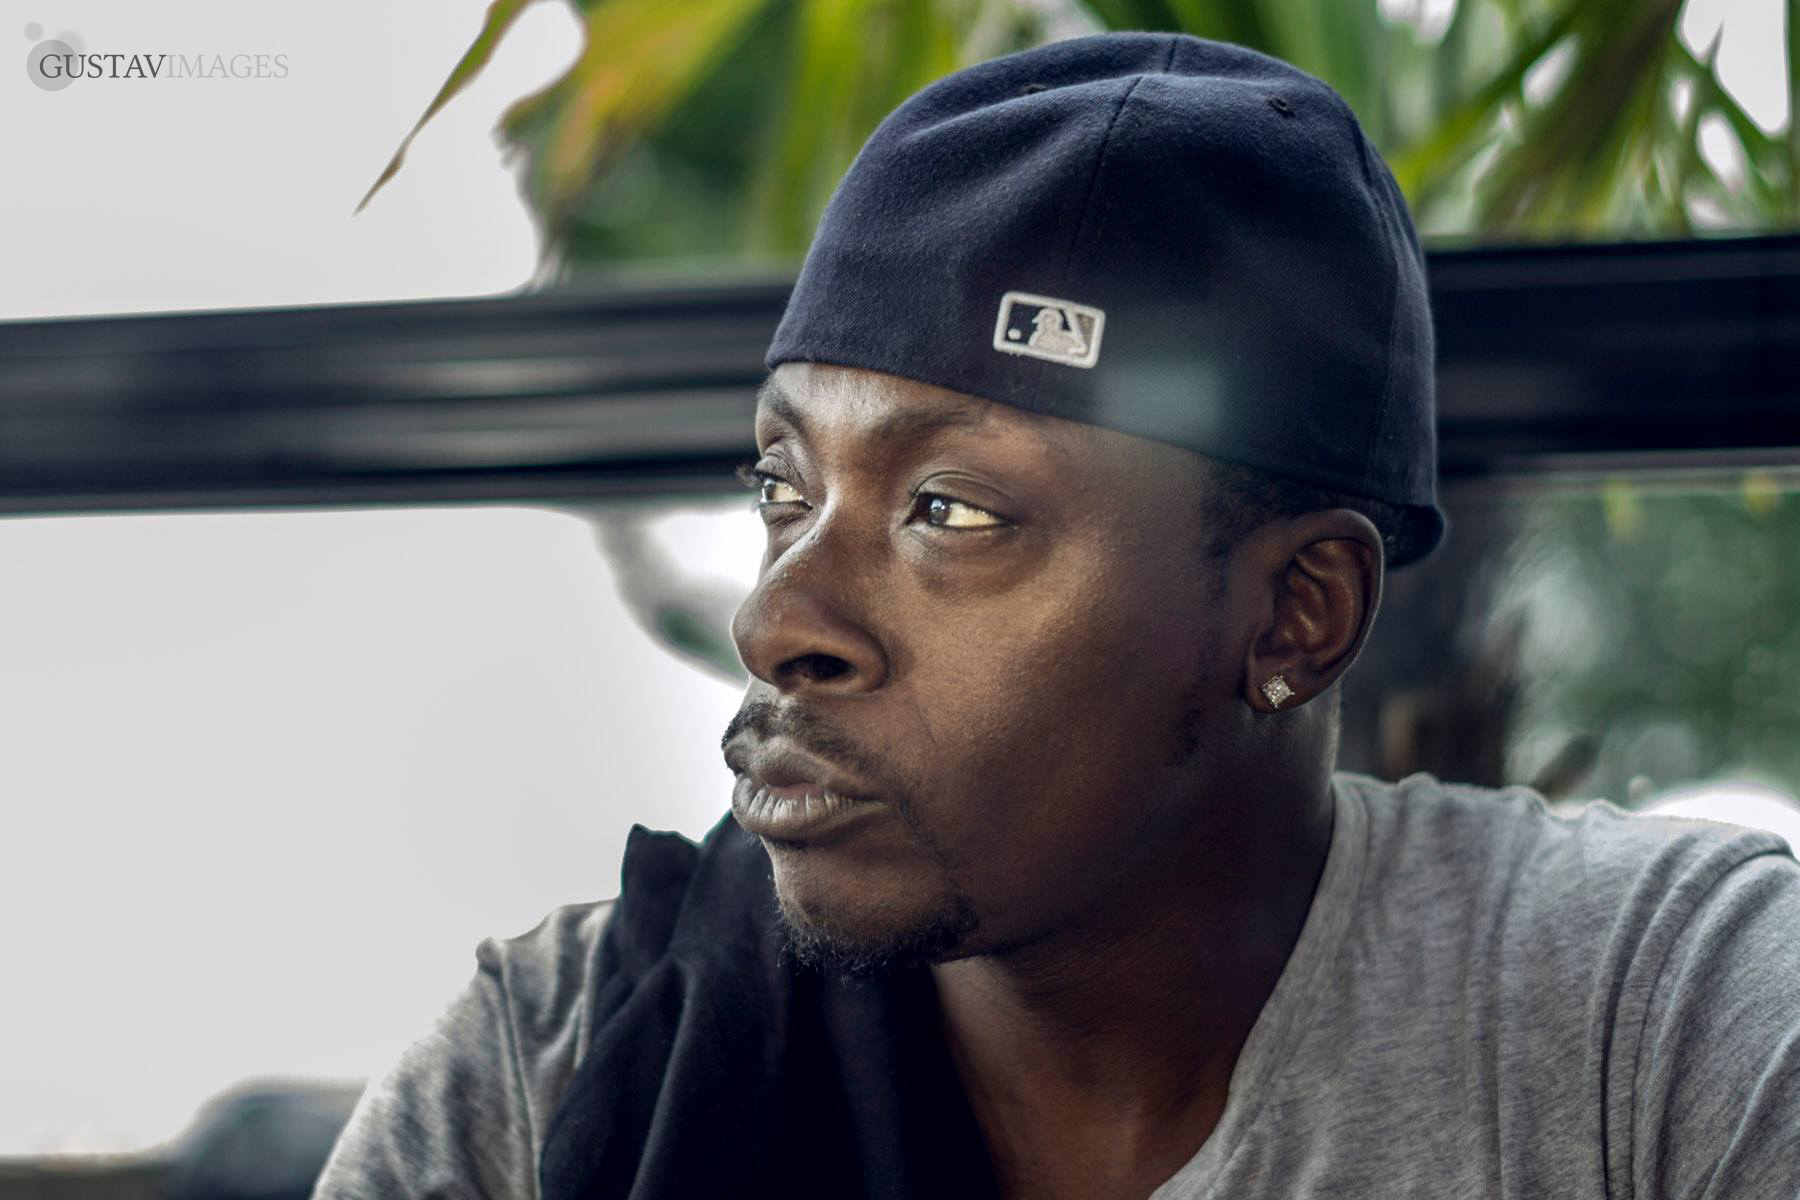 PeteRock (by Gustav)